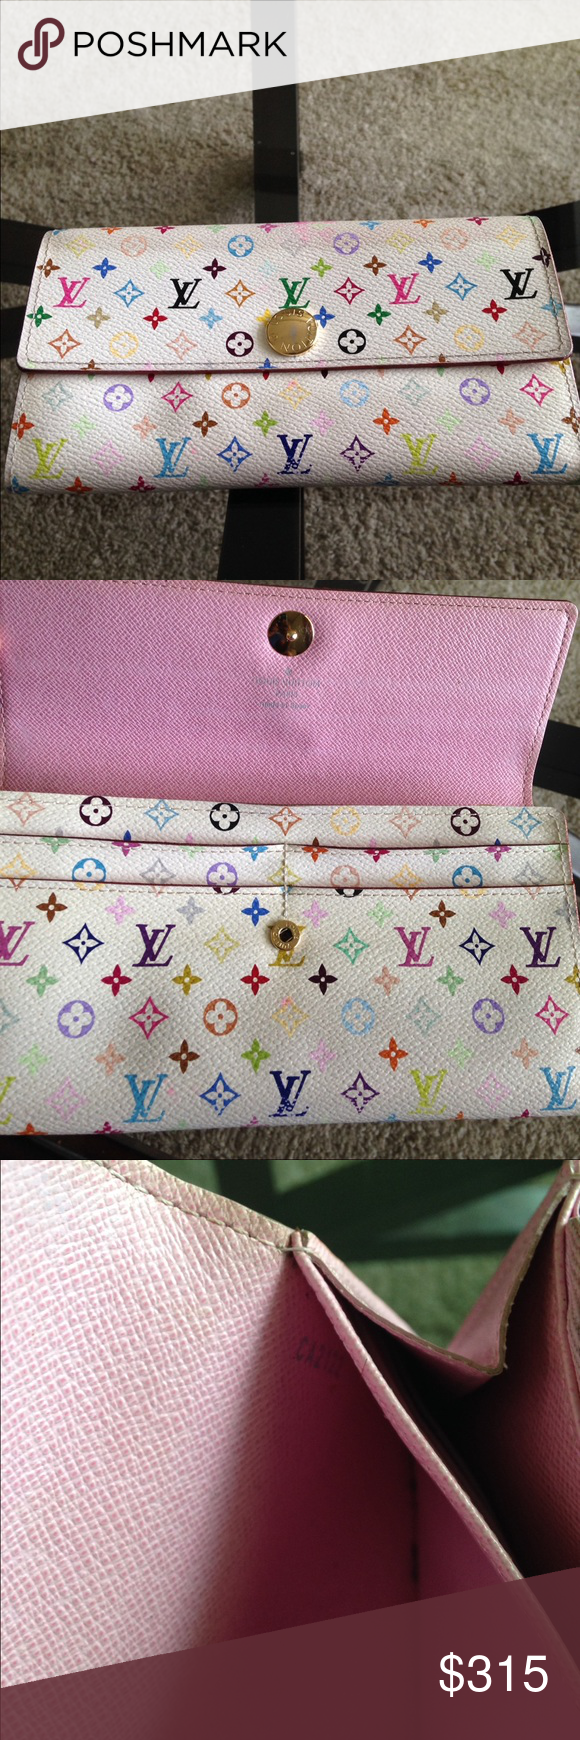 Louis Vuitton Long Wallet Authentic Louis Vuitton Long Wallet White Monogram Multicolor. No Trades No Bundles 10 credit card slots. Yes it can hold a checkbook. Code CA2122. Depth- 0.98 Height-3.93, Width 7.40. No odor, no rips or tear. Zipper works fine.  Silly offers will get you block. This wallet is in great condition no issues. Yes dust bag and box Louis Vuitton Bags Wallets